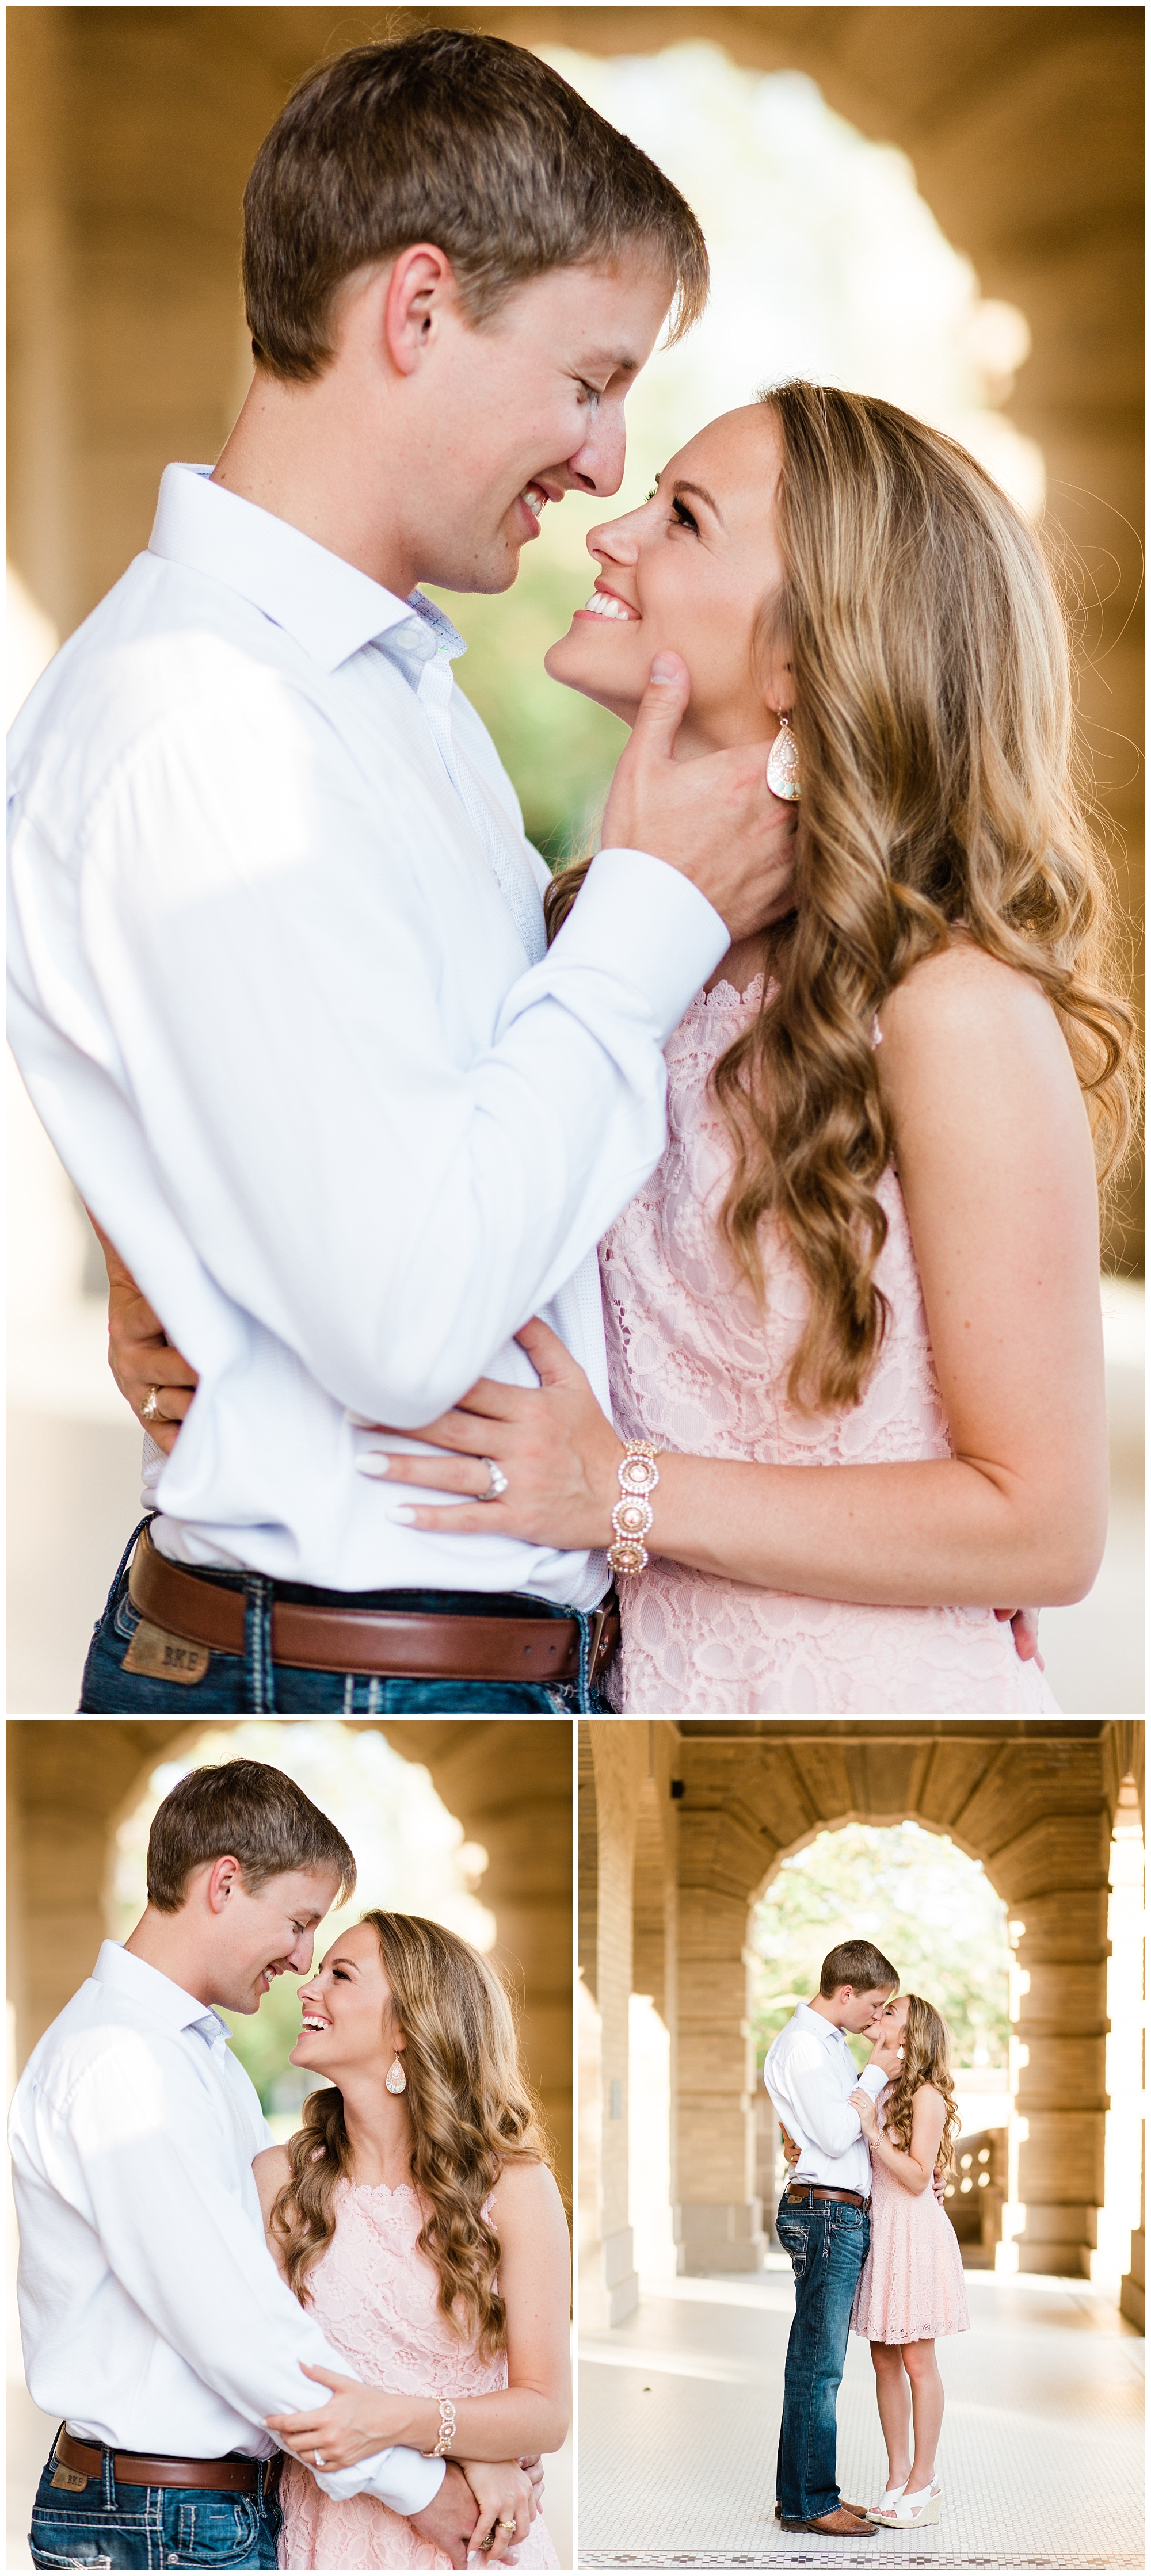 Texas_A&M_Engagement_Session_Kristina_Ross_Photography_0008.jpg